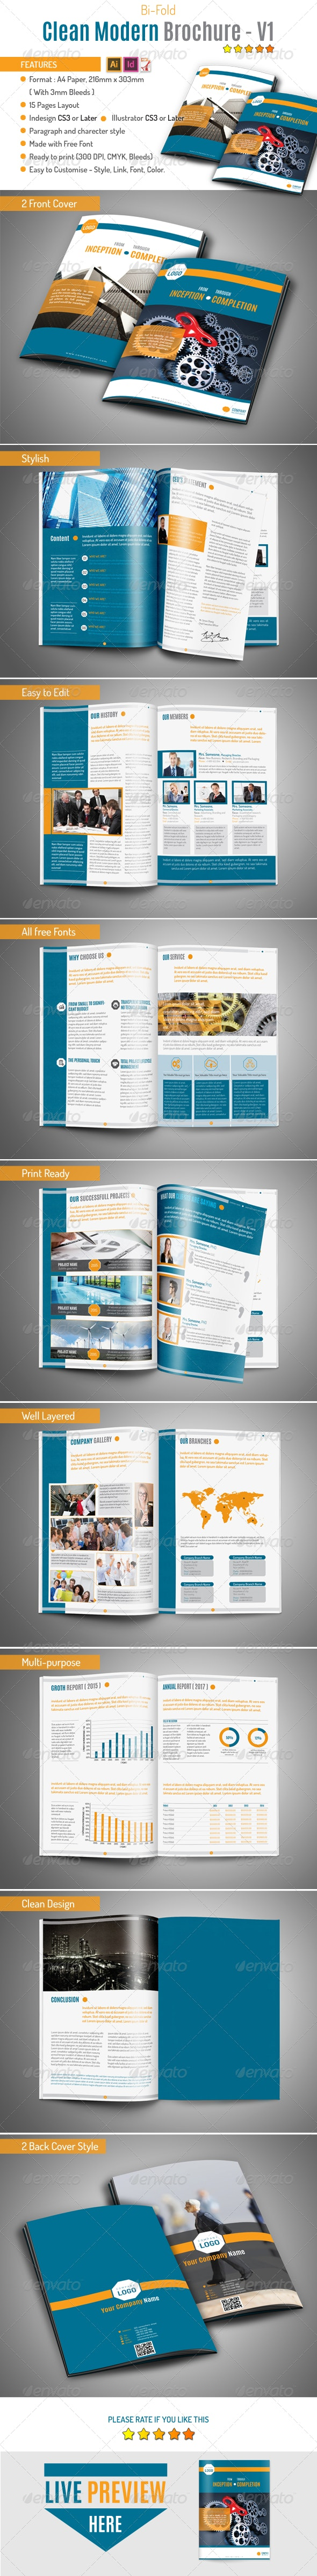 Clean Modern Brochure v1 - Corporate Brochures